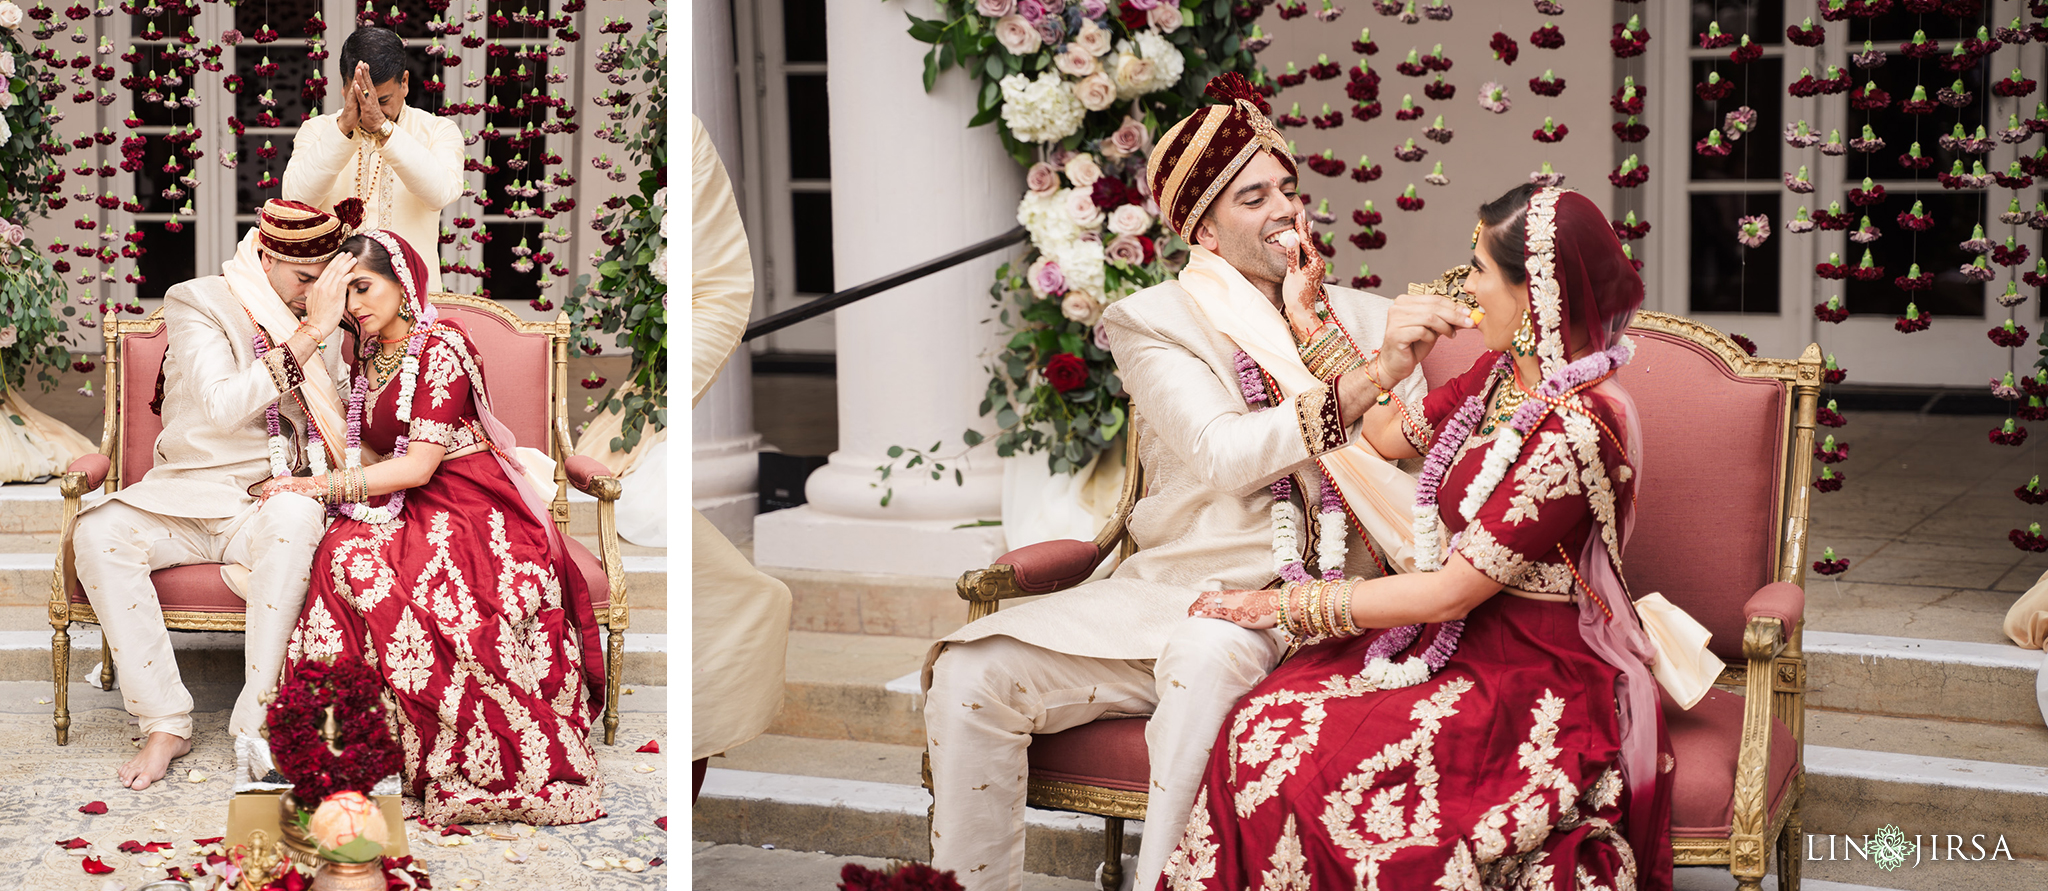 26 The Ebell Los Angeles Indian Wedding Ceremony Photography